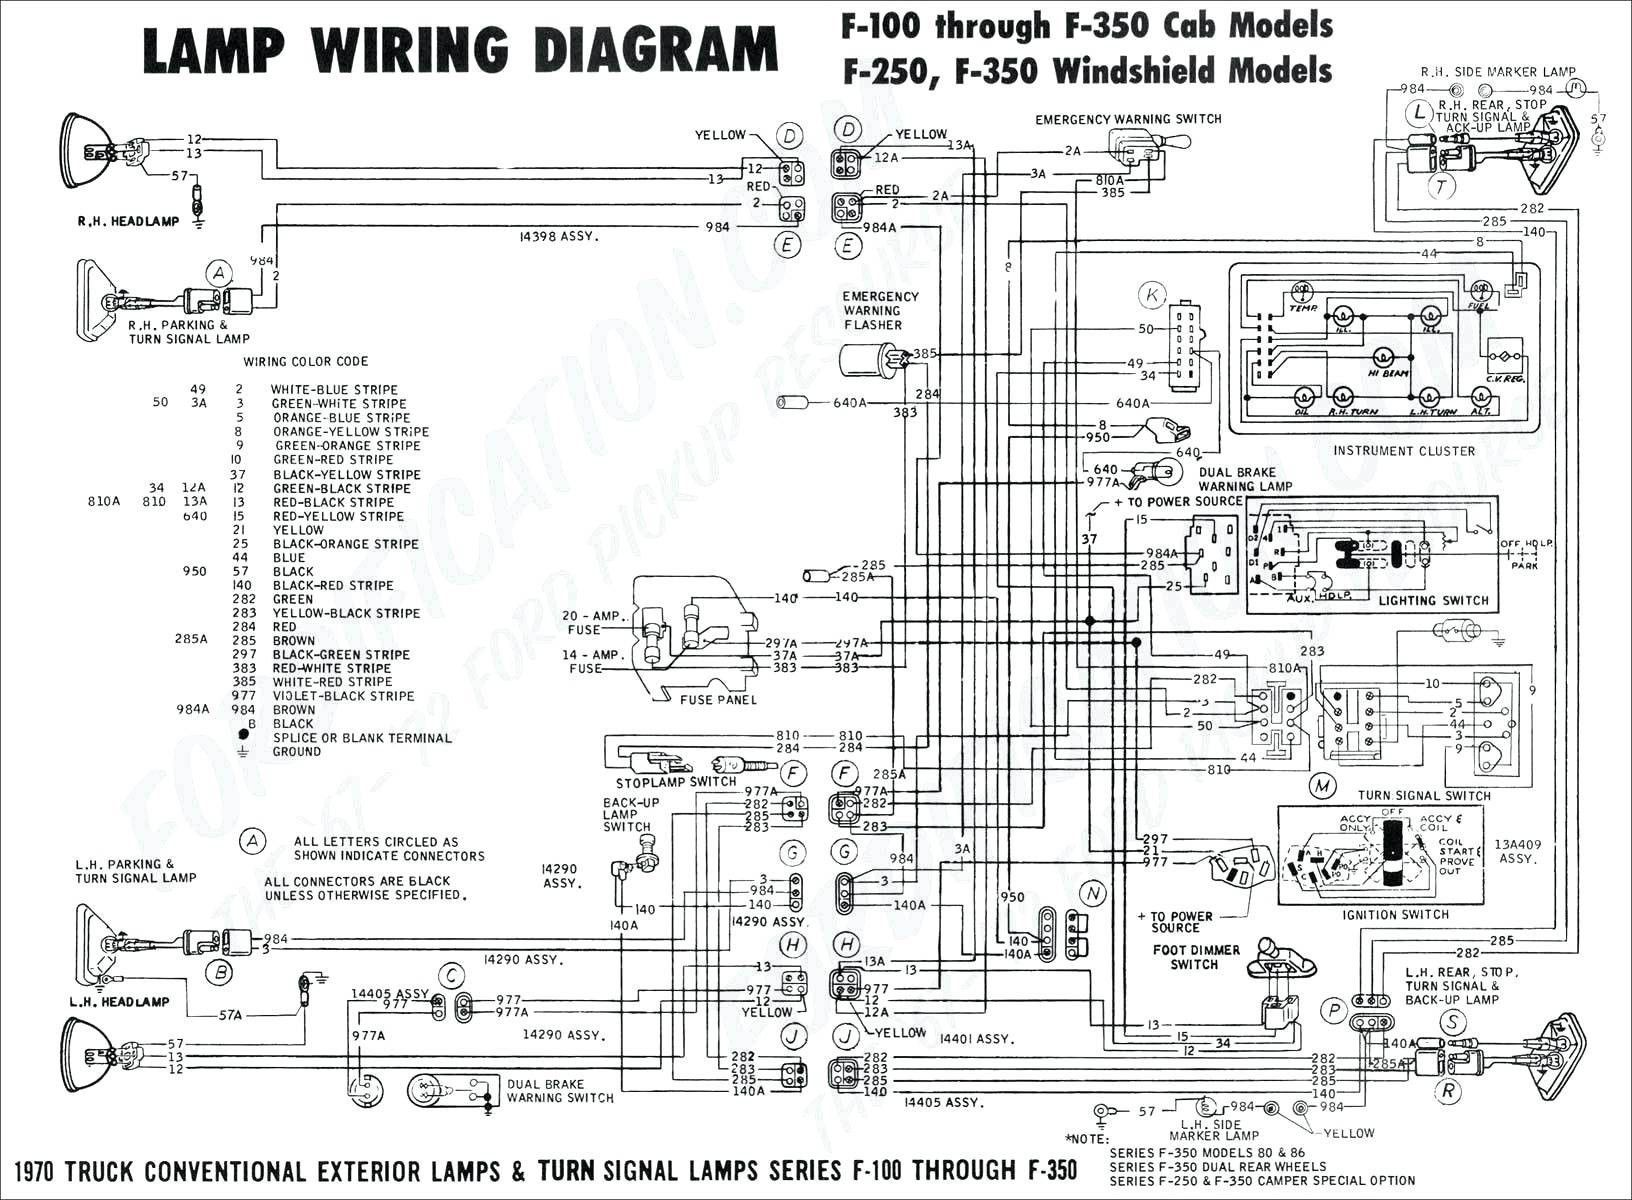 4 6 Ford Engine Diagram In 2020 Trailer Wiring Diagram Electrical Wiring Diagram Diagram